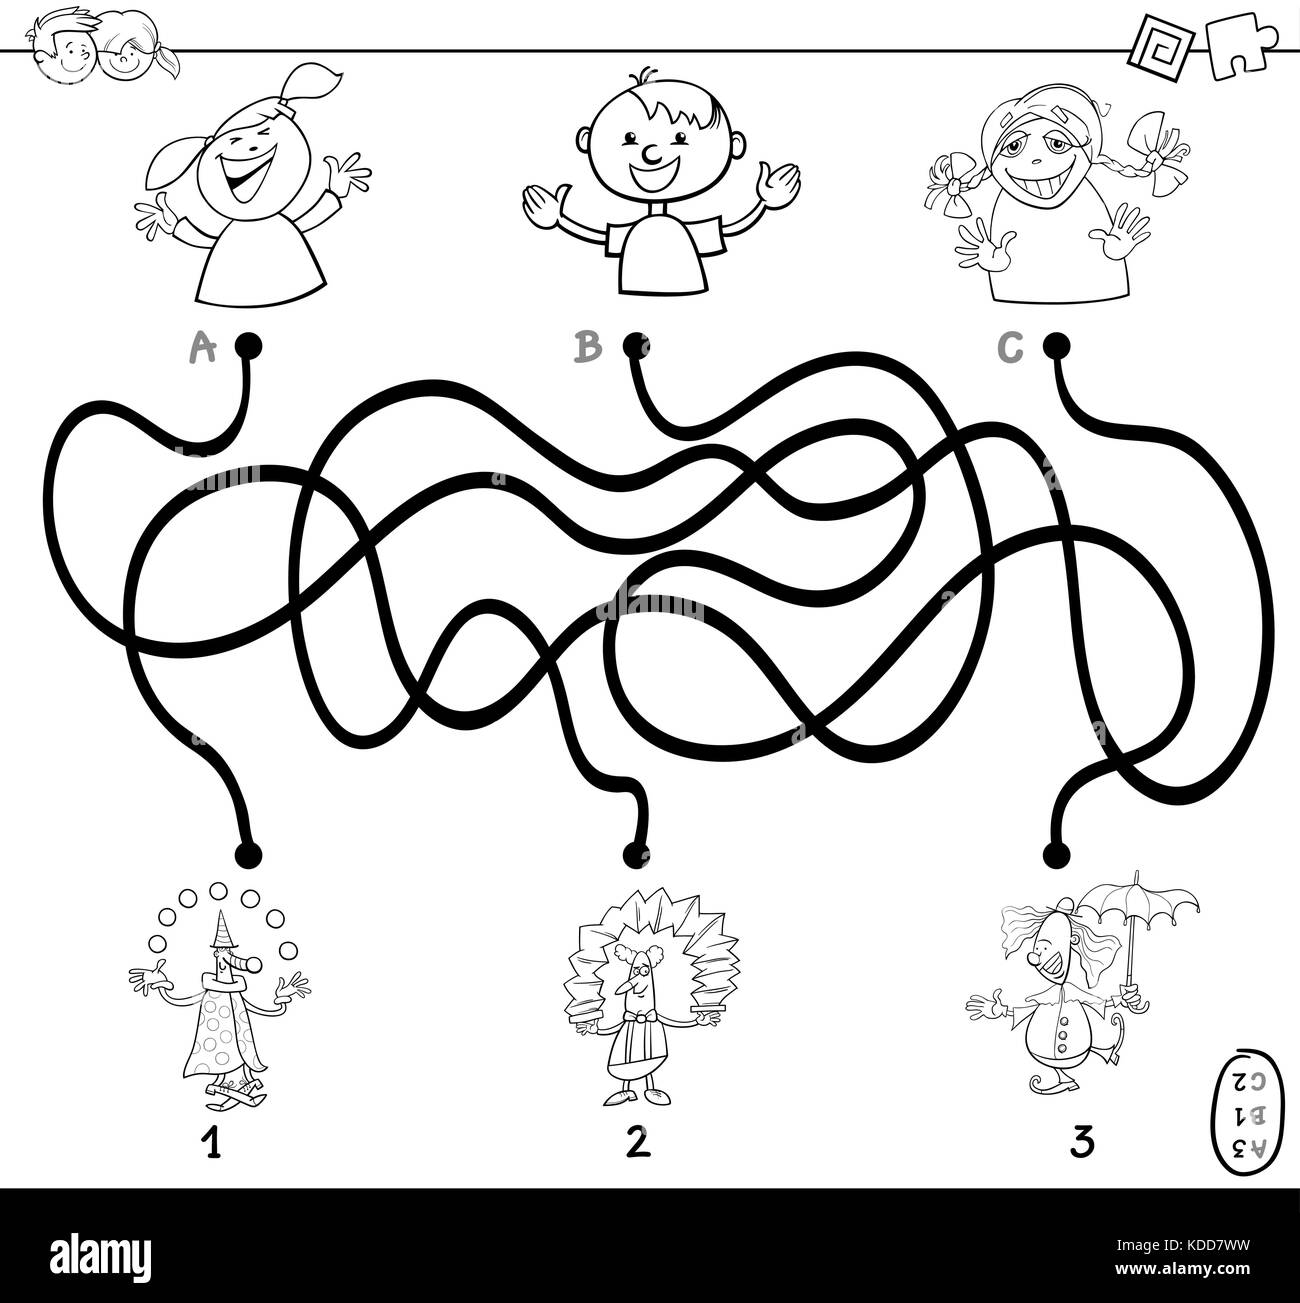 Clown Cartoon Coloring Page Immagini Clown Cartoon Coloring Page